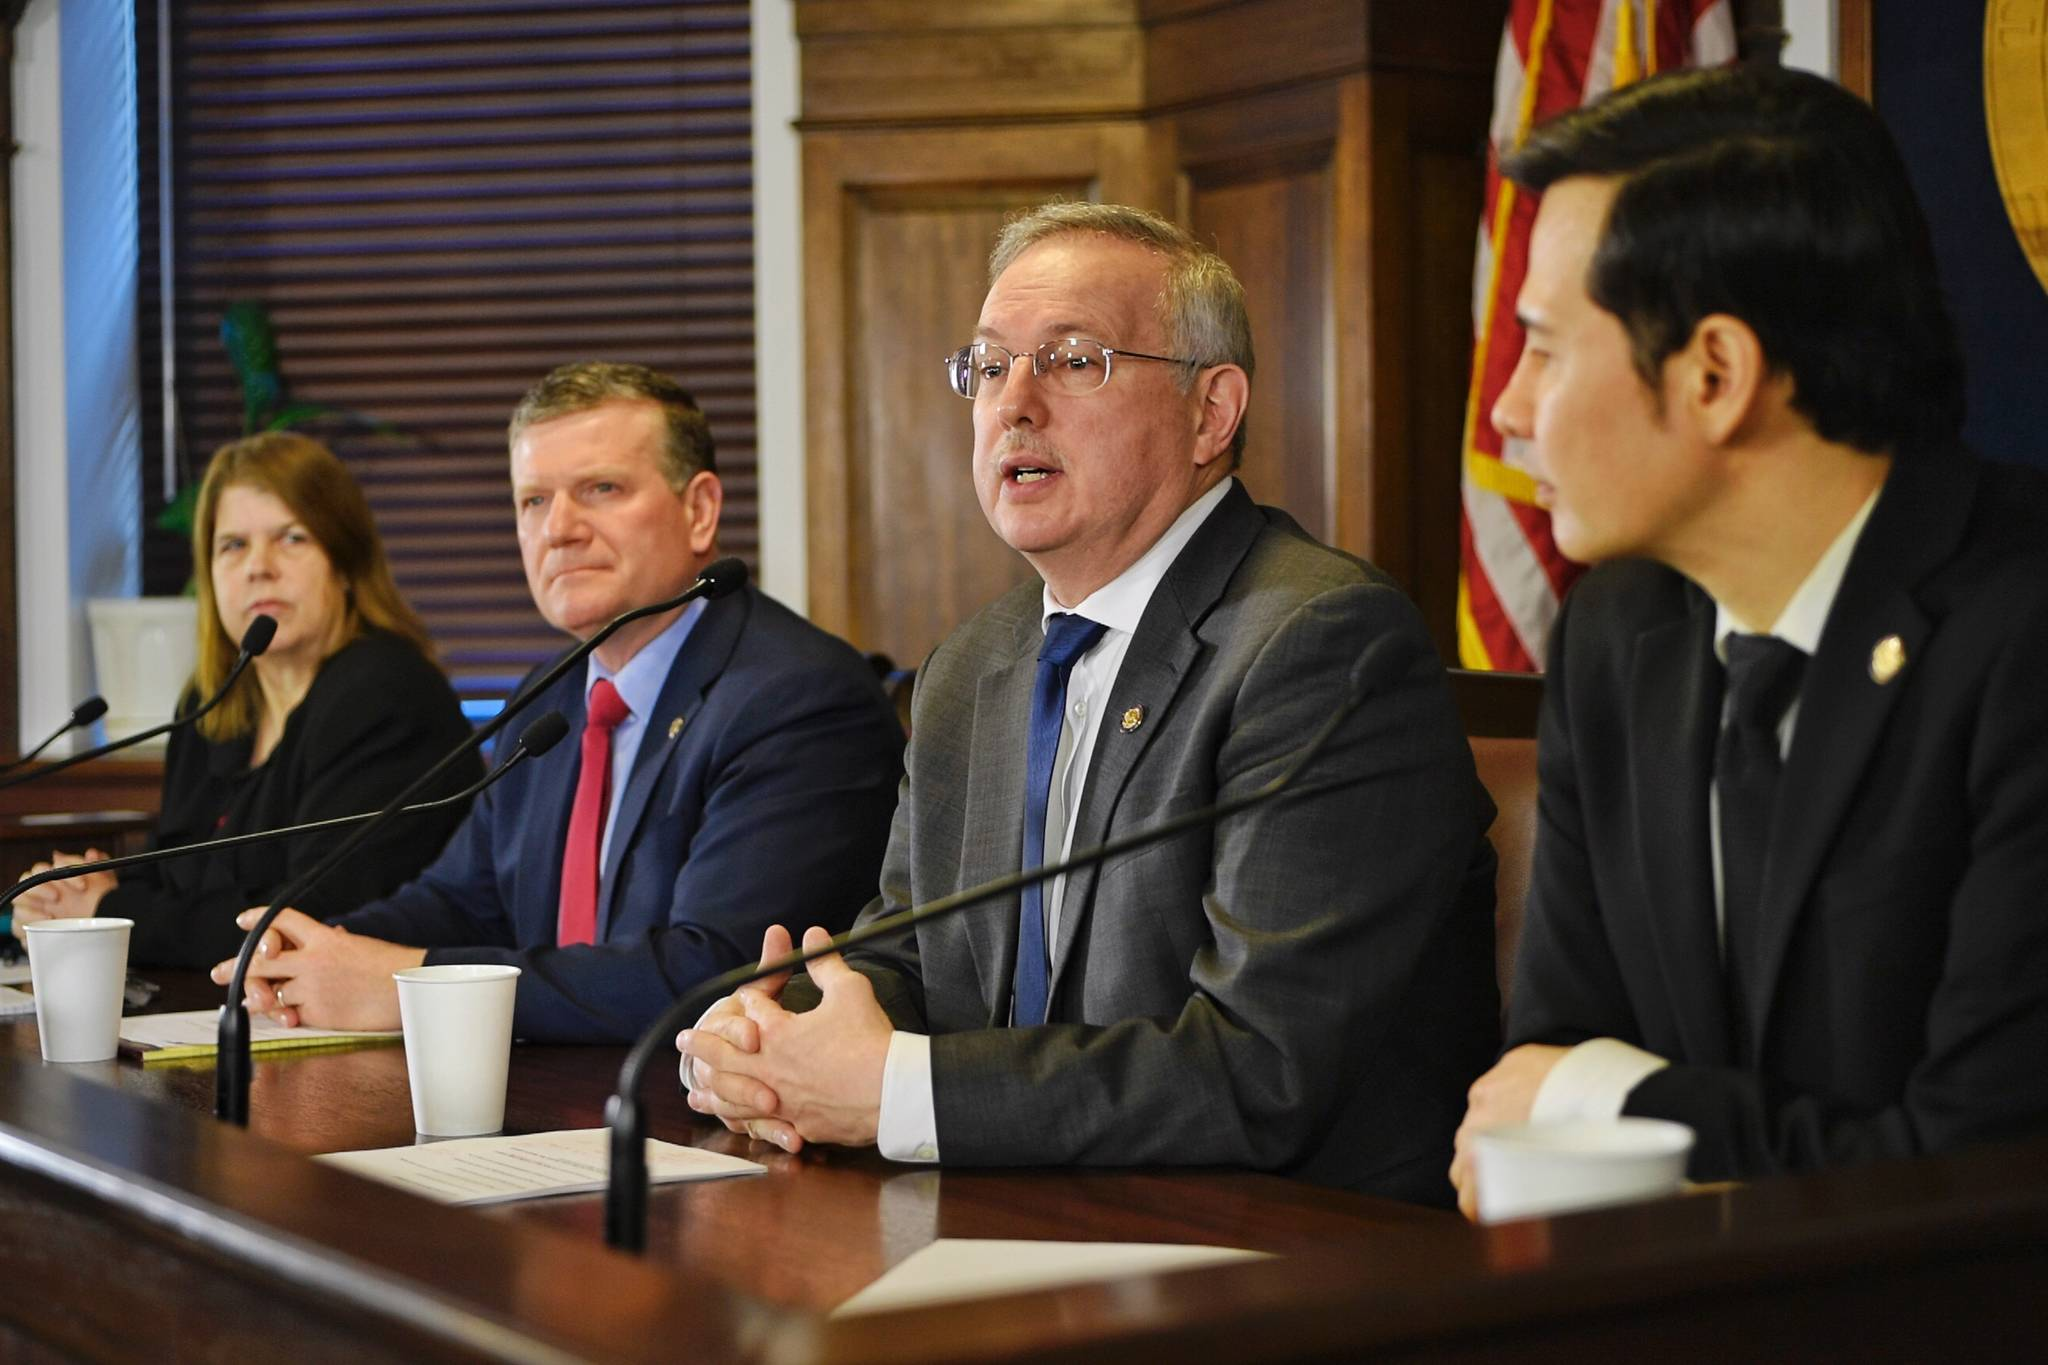 Speaker of the House Bryce Edgmon, I-Dillingham, second from right, speaks during a House Majority press conference at the Capitol on Thursday, March 28, 2019. Also attending the conference are Finance Committee co-chairs, Reps. Neal Foster, D-Nome, right and Tammie Wilson, R-North Pole, left, as well as Rep. Chuck Kopp, R-Anchorage, Chair of the Rules Committee. (Michael Penn | Juneau Empire)